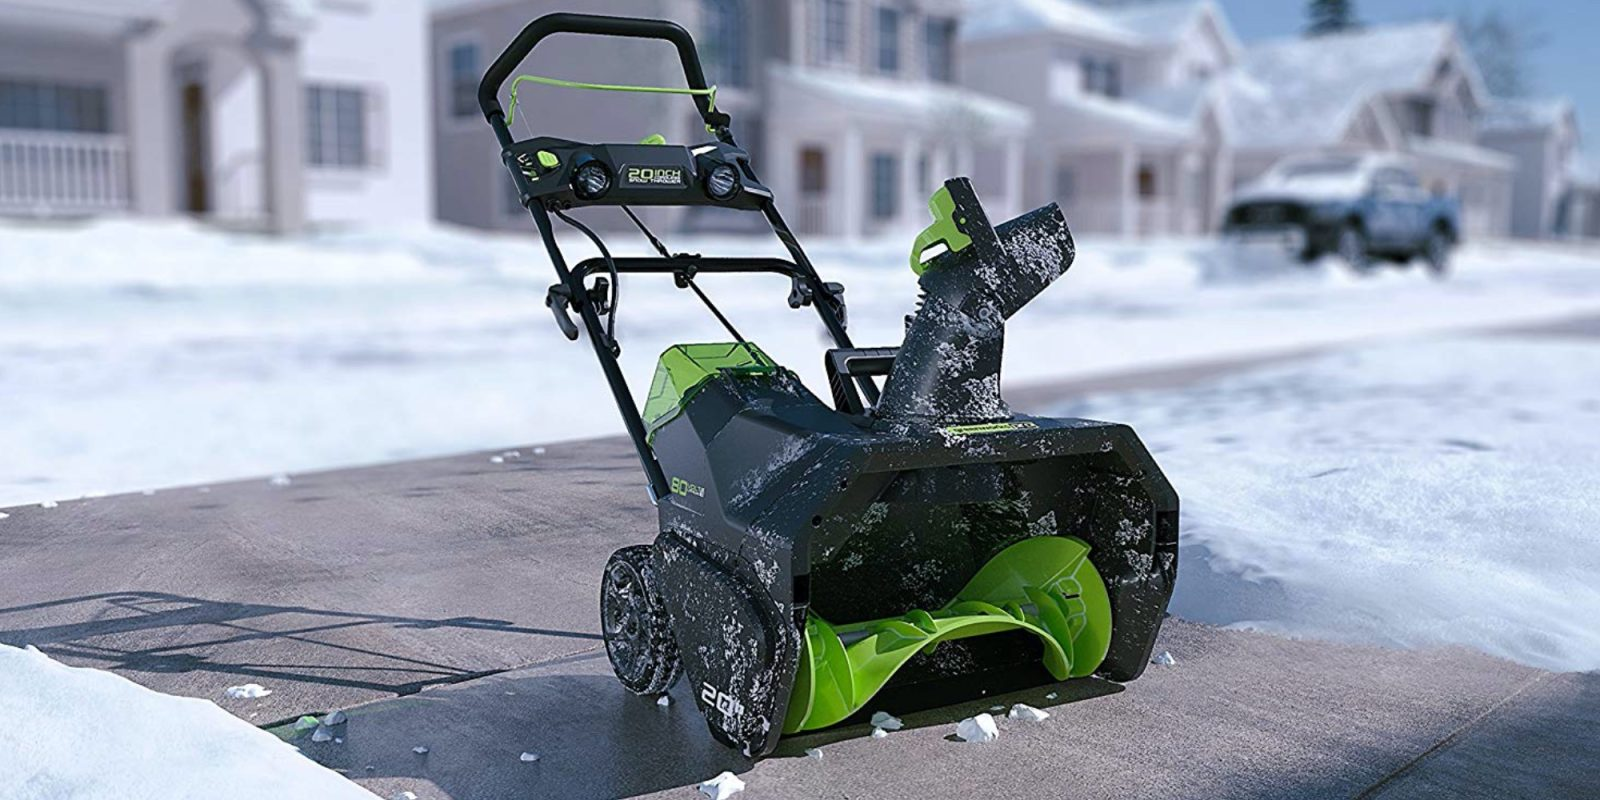 Greenworks 20-inch Cordless Snow Thrower hits $221 (38% off), more from $103